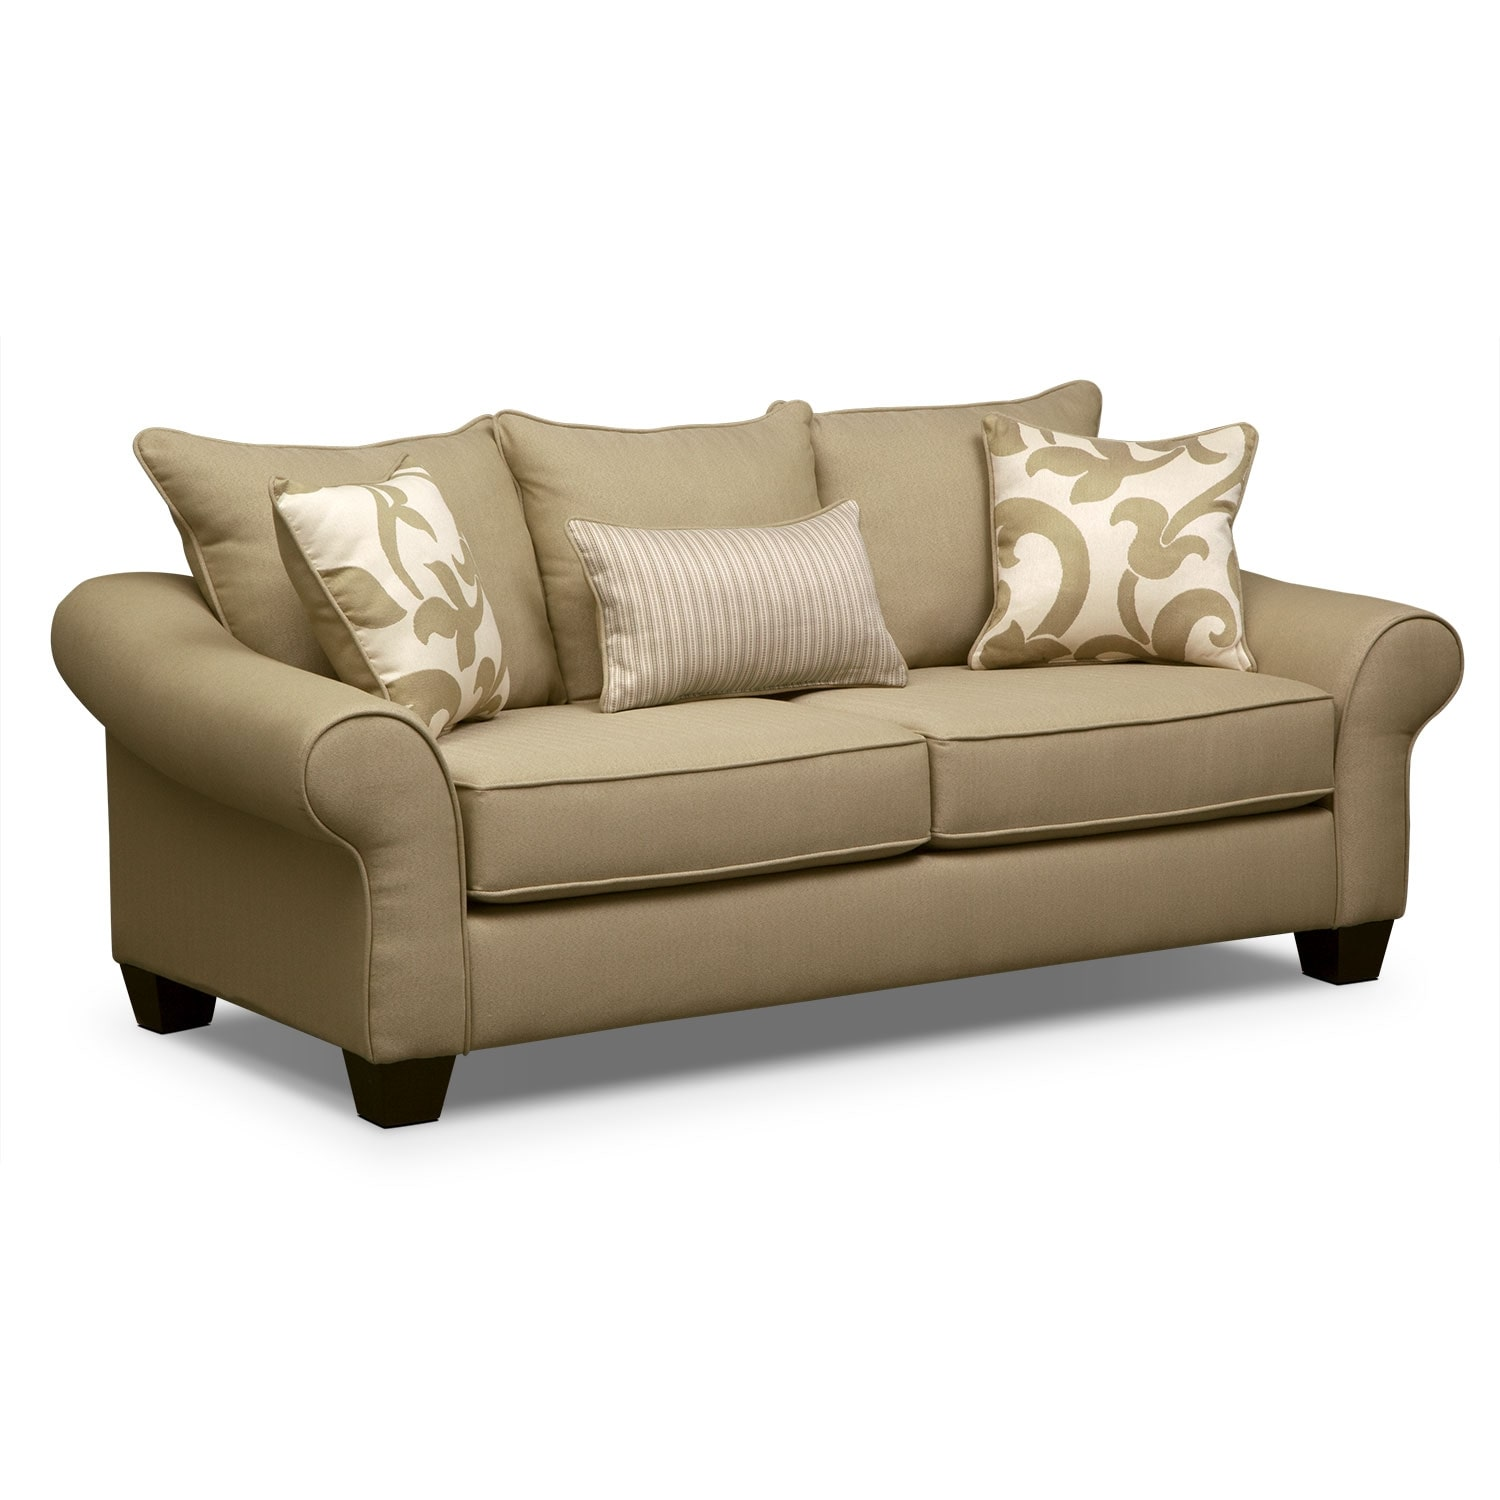 Living Room Furniture - Colette Khaki Sofa